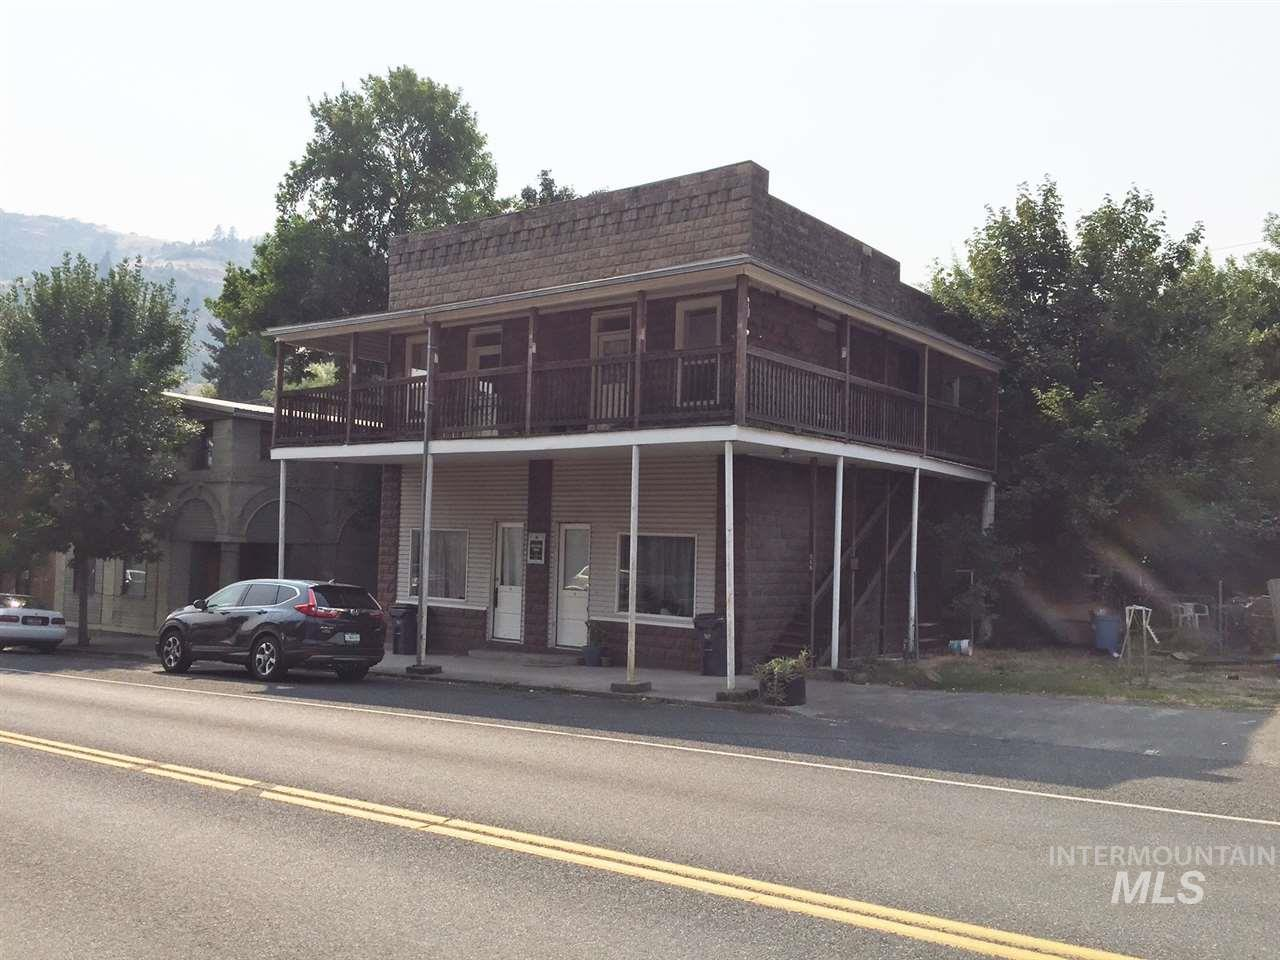 Apartment for Sale at 215 Main Street 215 Main Street Juliaetta, Idaho 83823